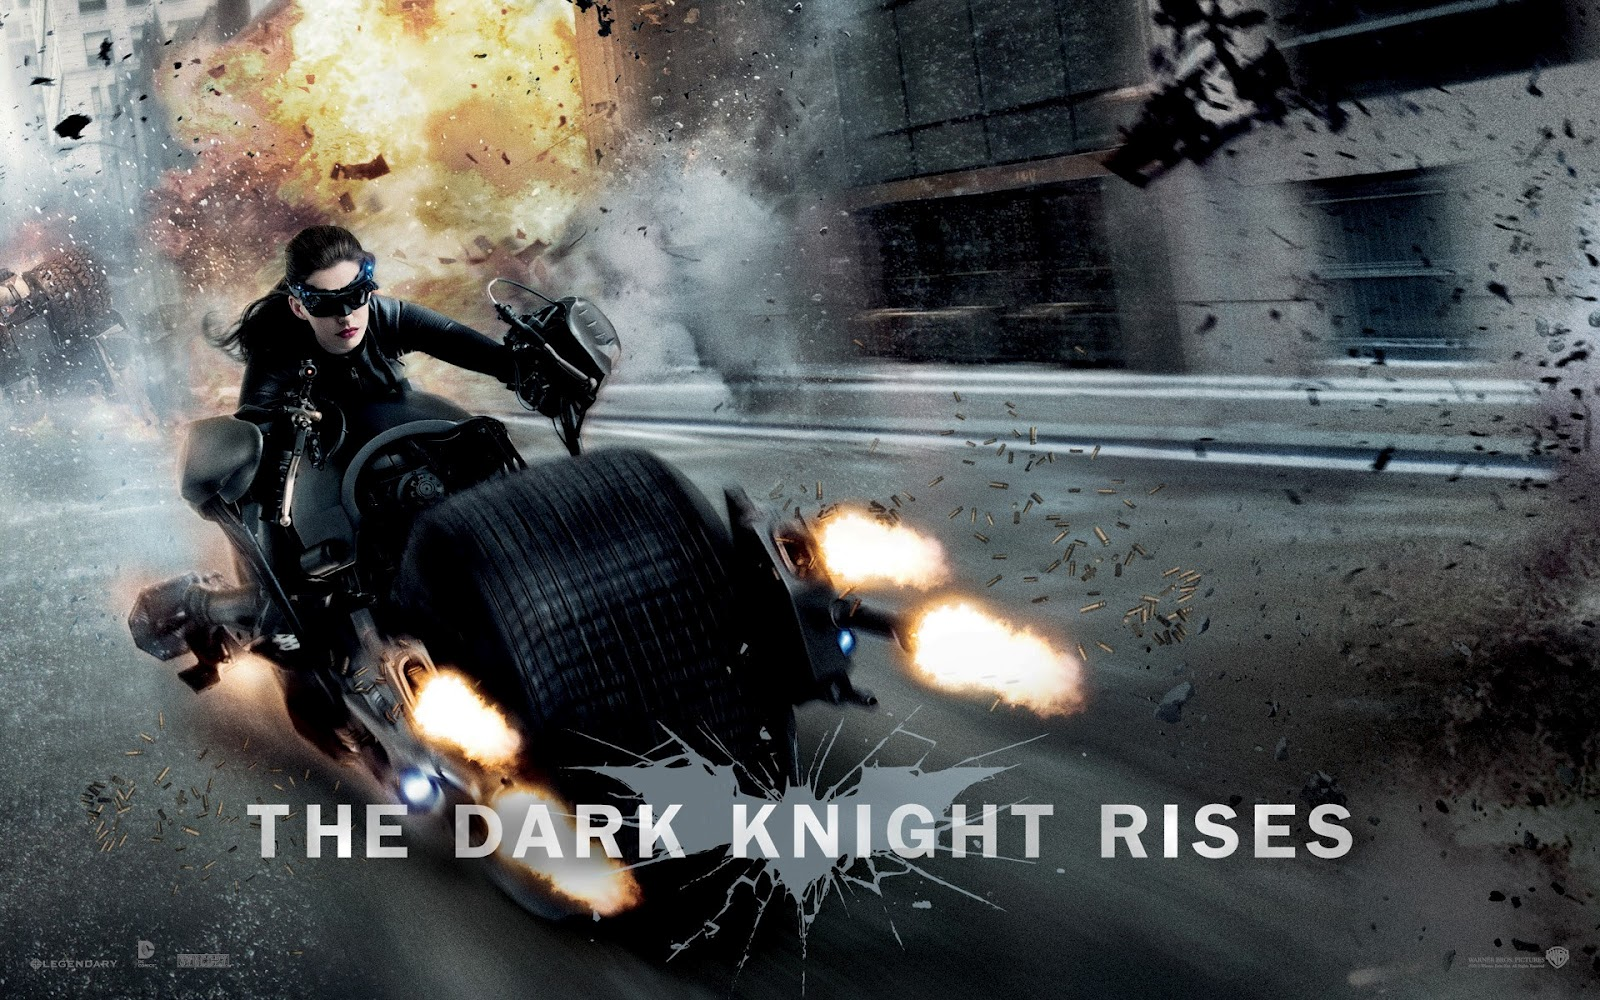 catwoman the dark knight rises wallpapers - Catwoman The Dark Knight Rises Wallpapers HD